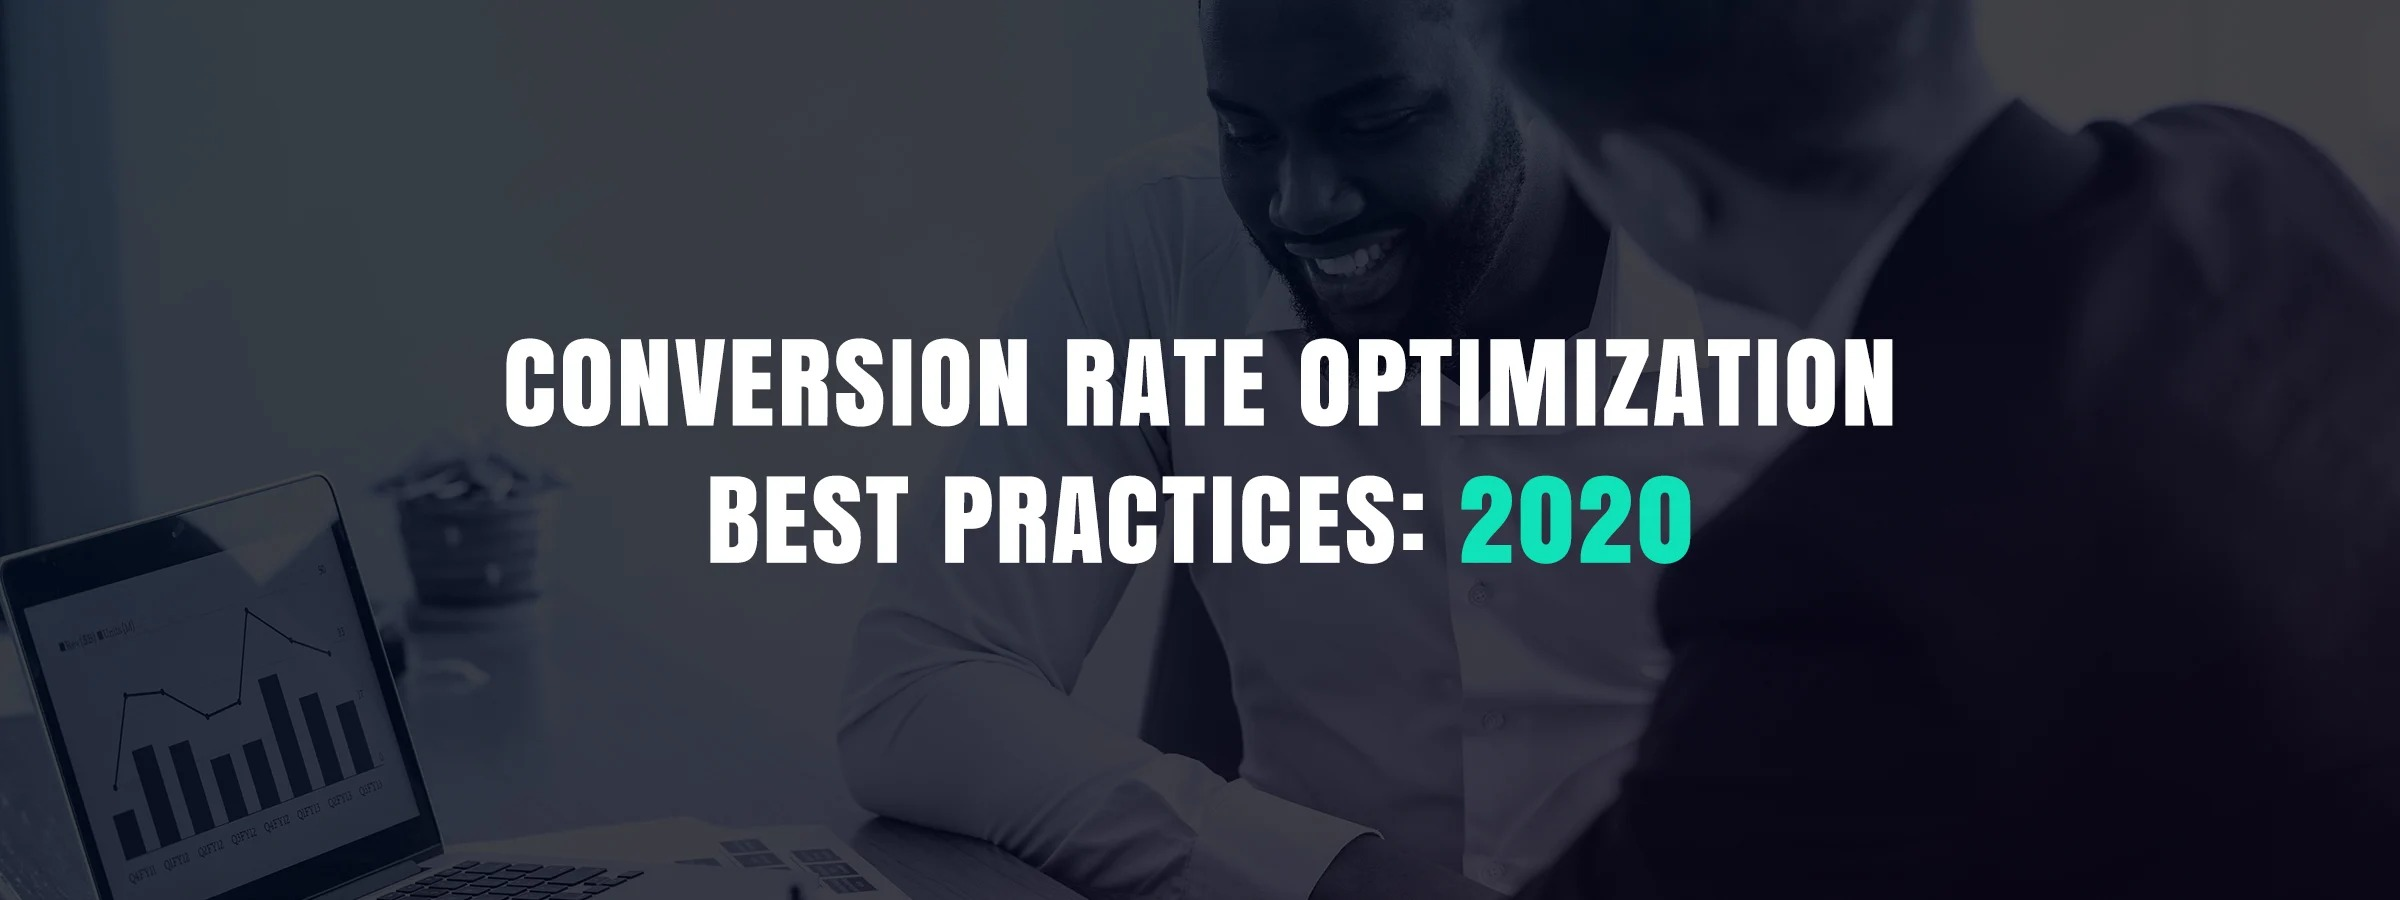 Conversion rate optimization best practices: 2020